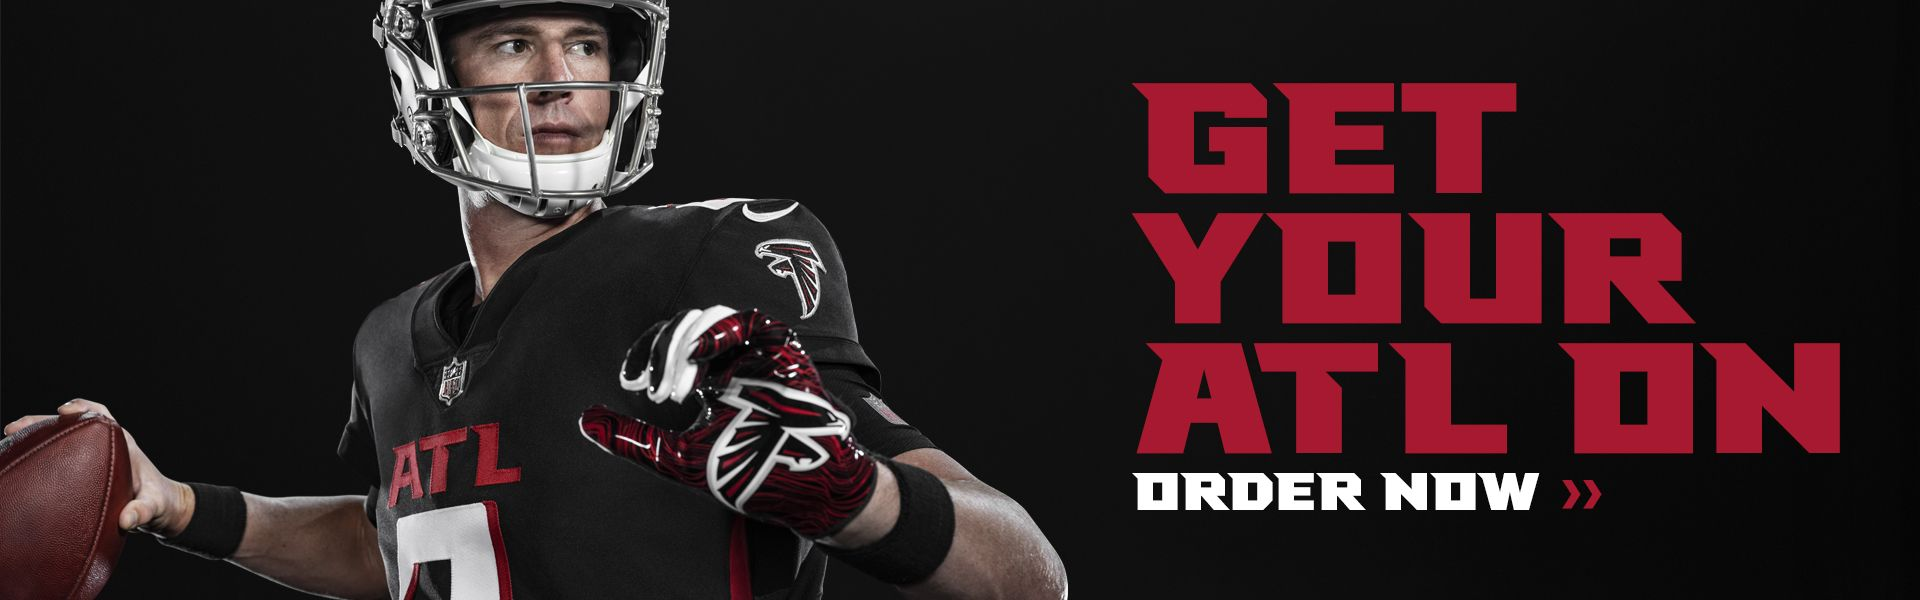 get-your-atl-on-web-banner-order-6